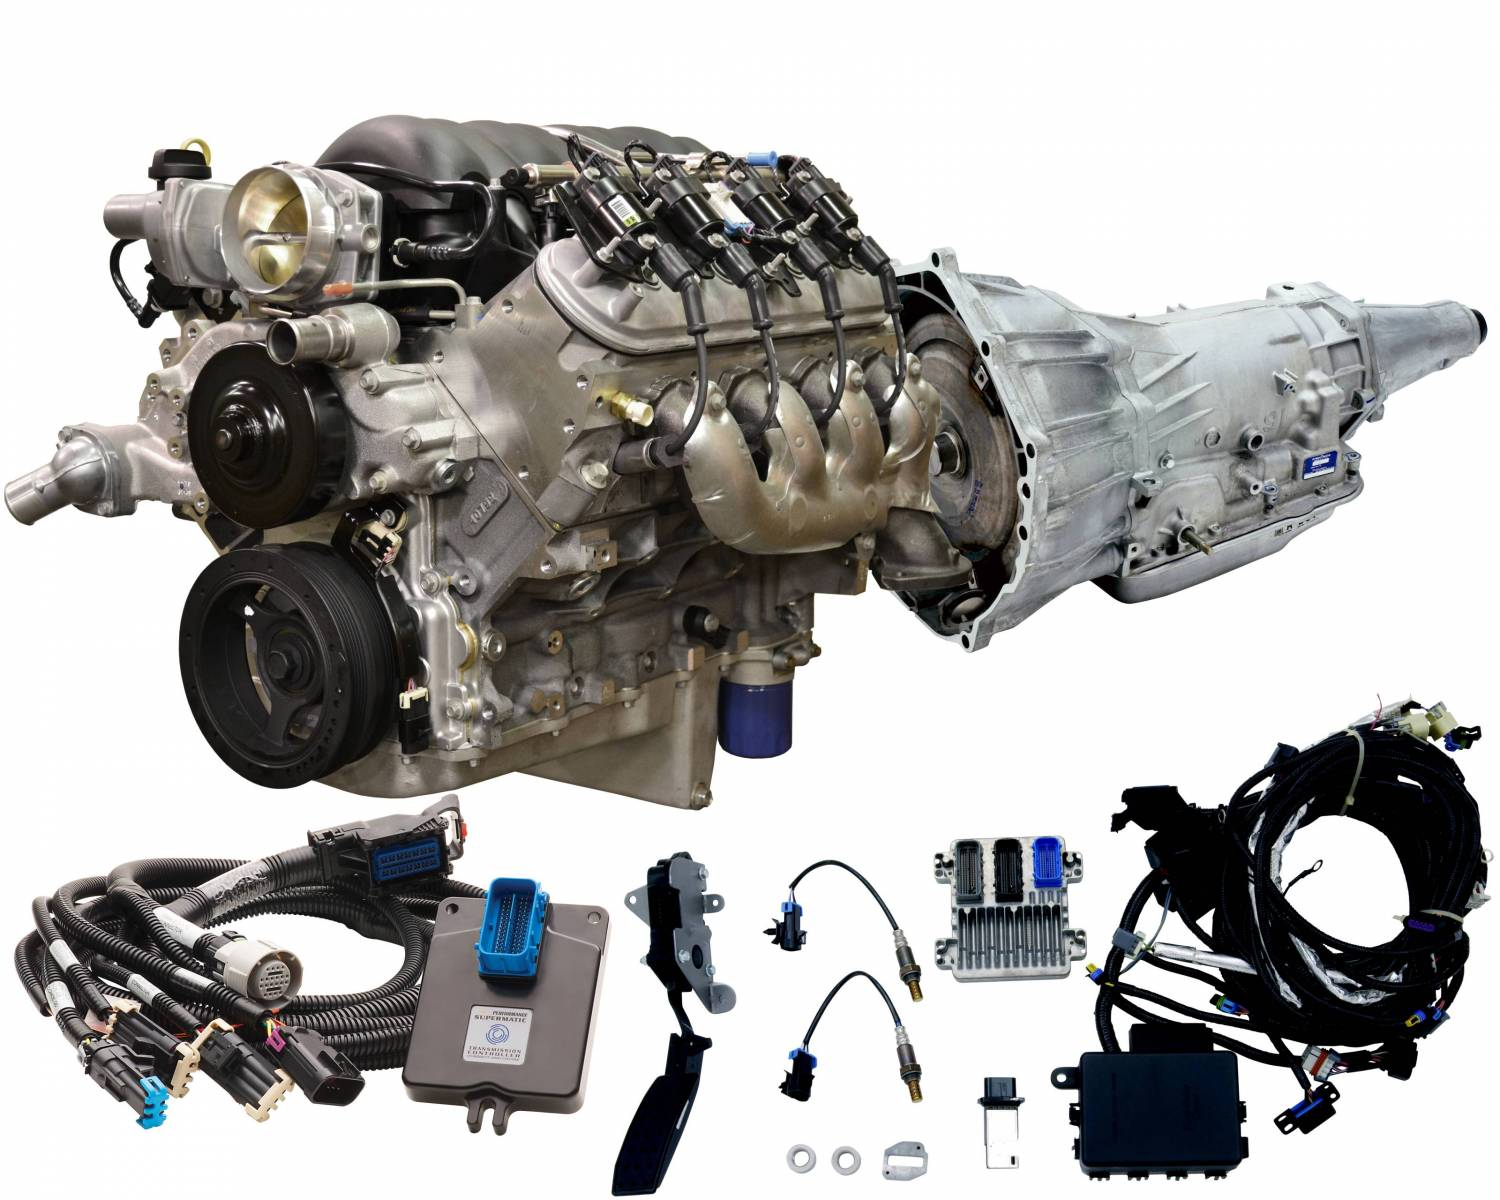 hight resolution of chevrolet performance parts cpsls3764804l70e cruise package ls3 495hp engine w 4l70e 2wd trans